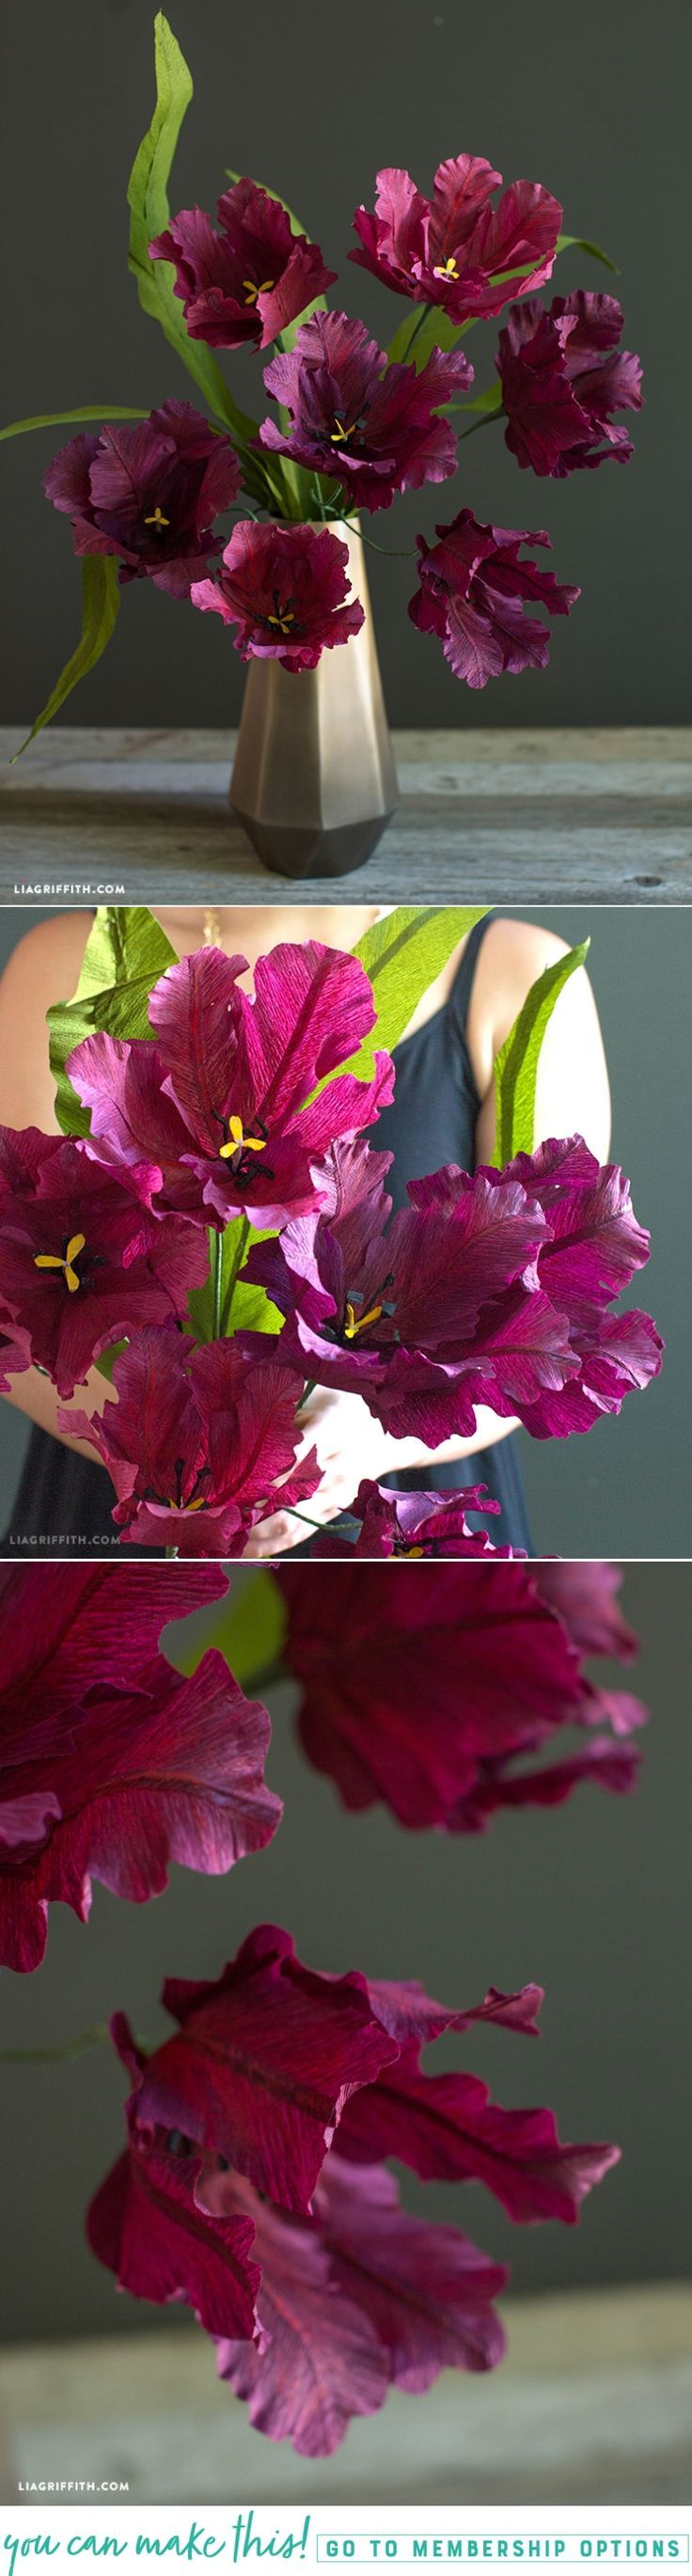 Crepe Paper Parrot Tulips  Parrot tulips Tutorials and Crepe paper